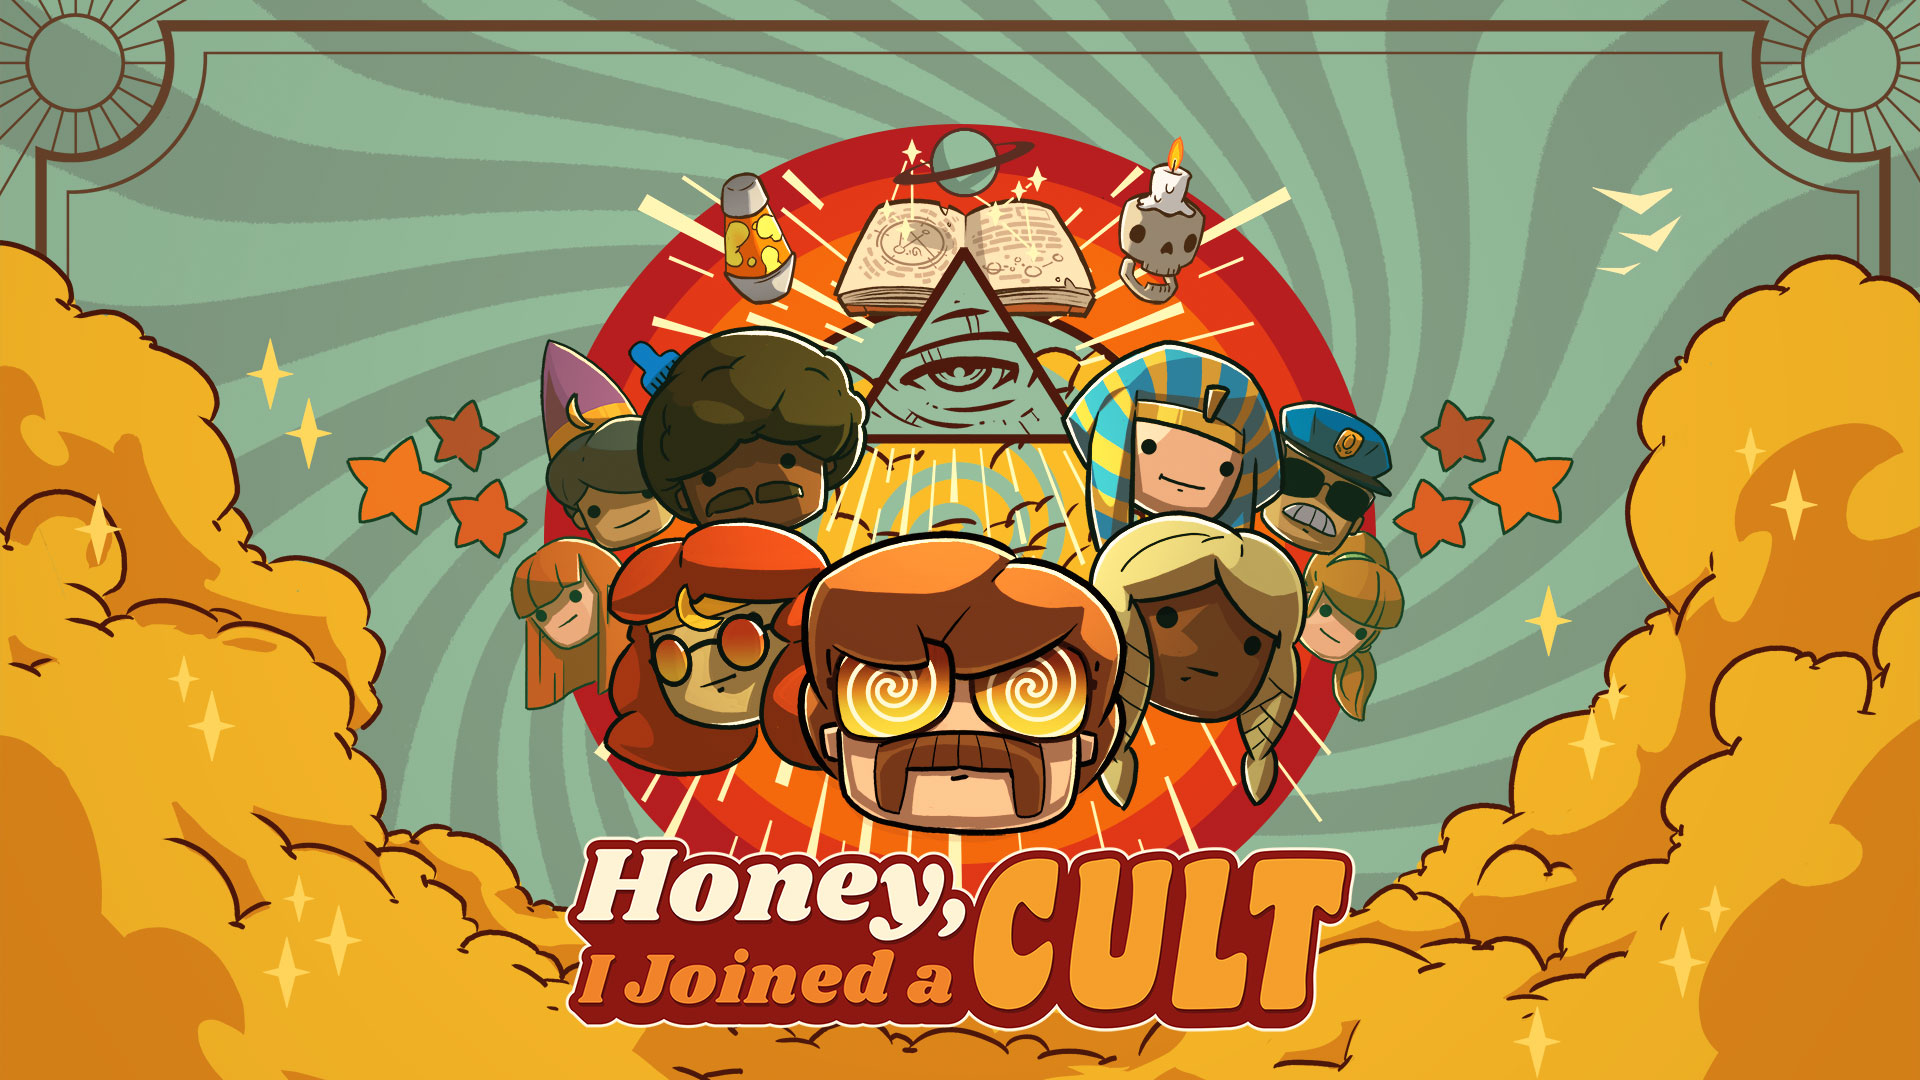 Honey, I Joined A Cult – Coming to Steam Early Access in 2021